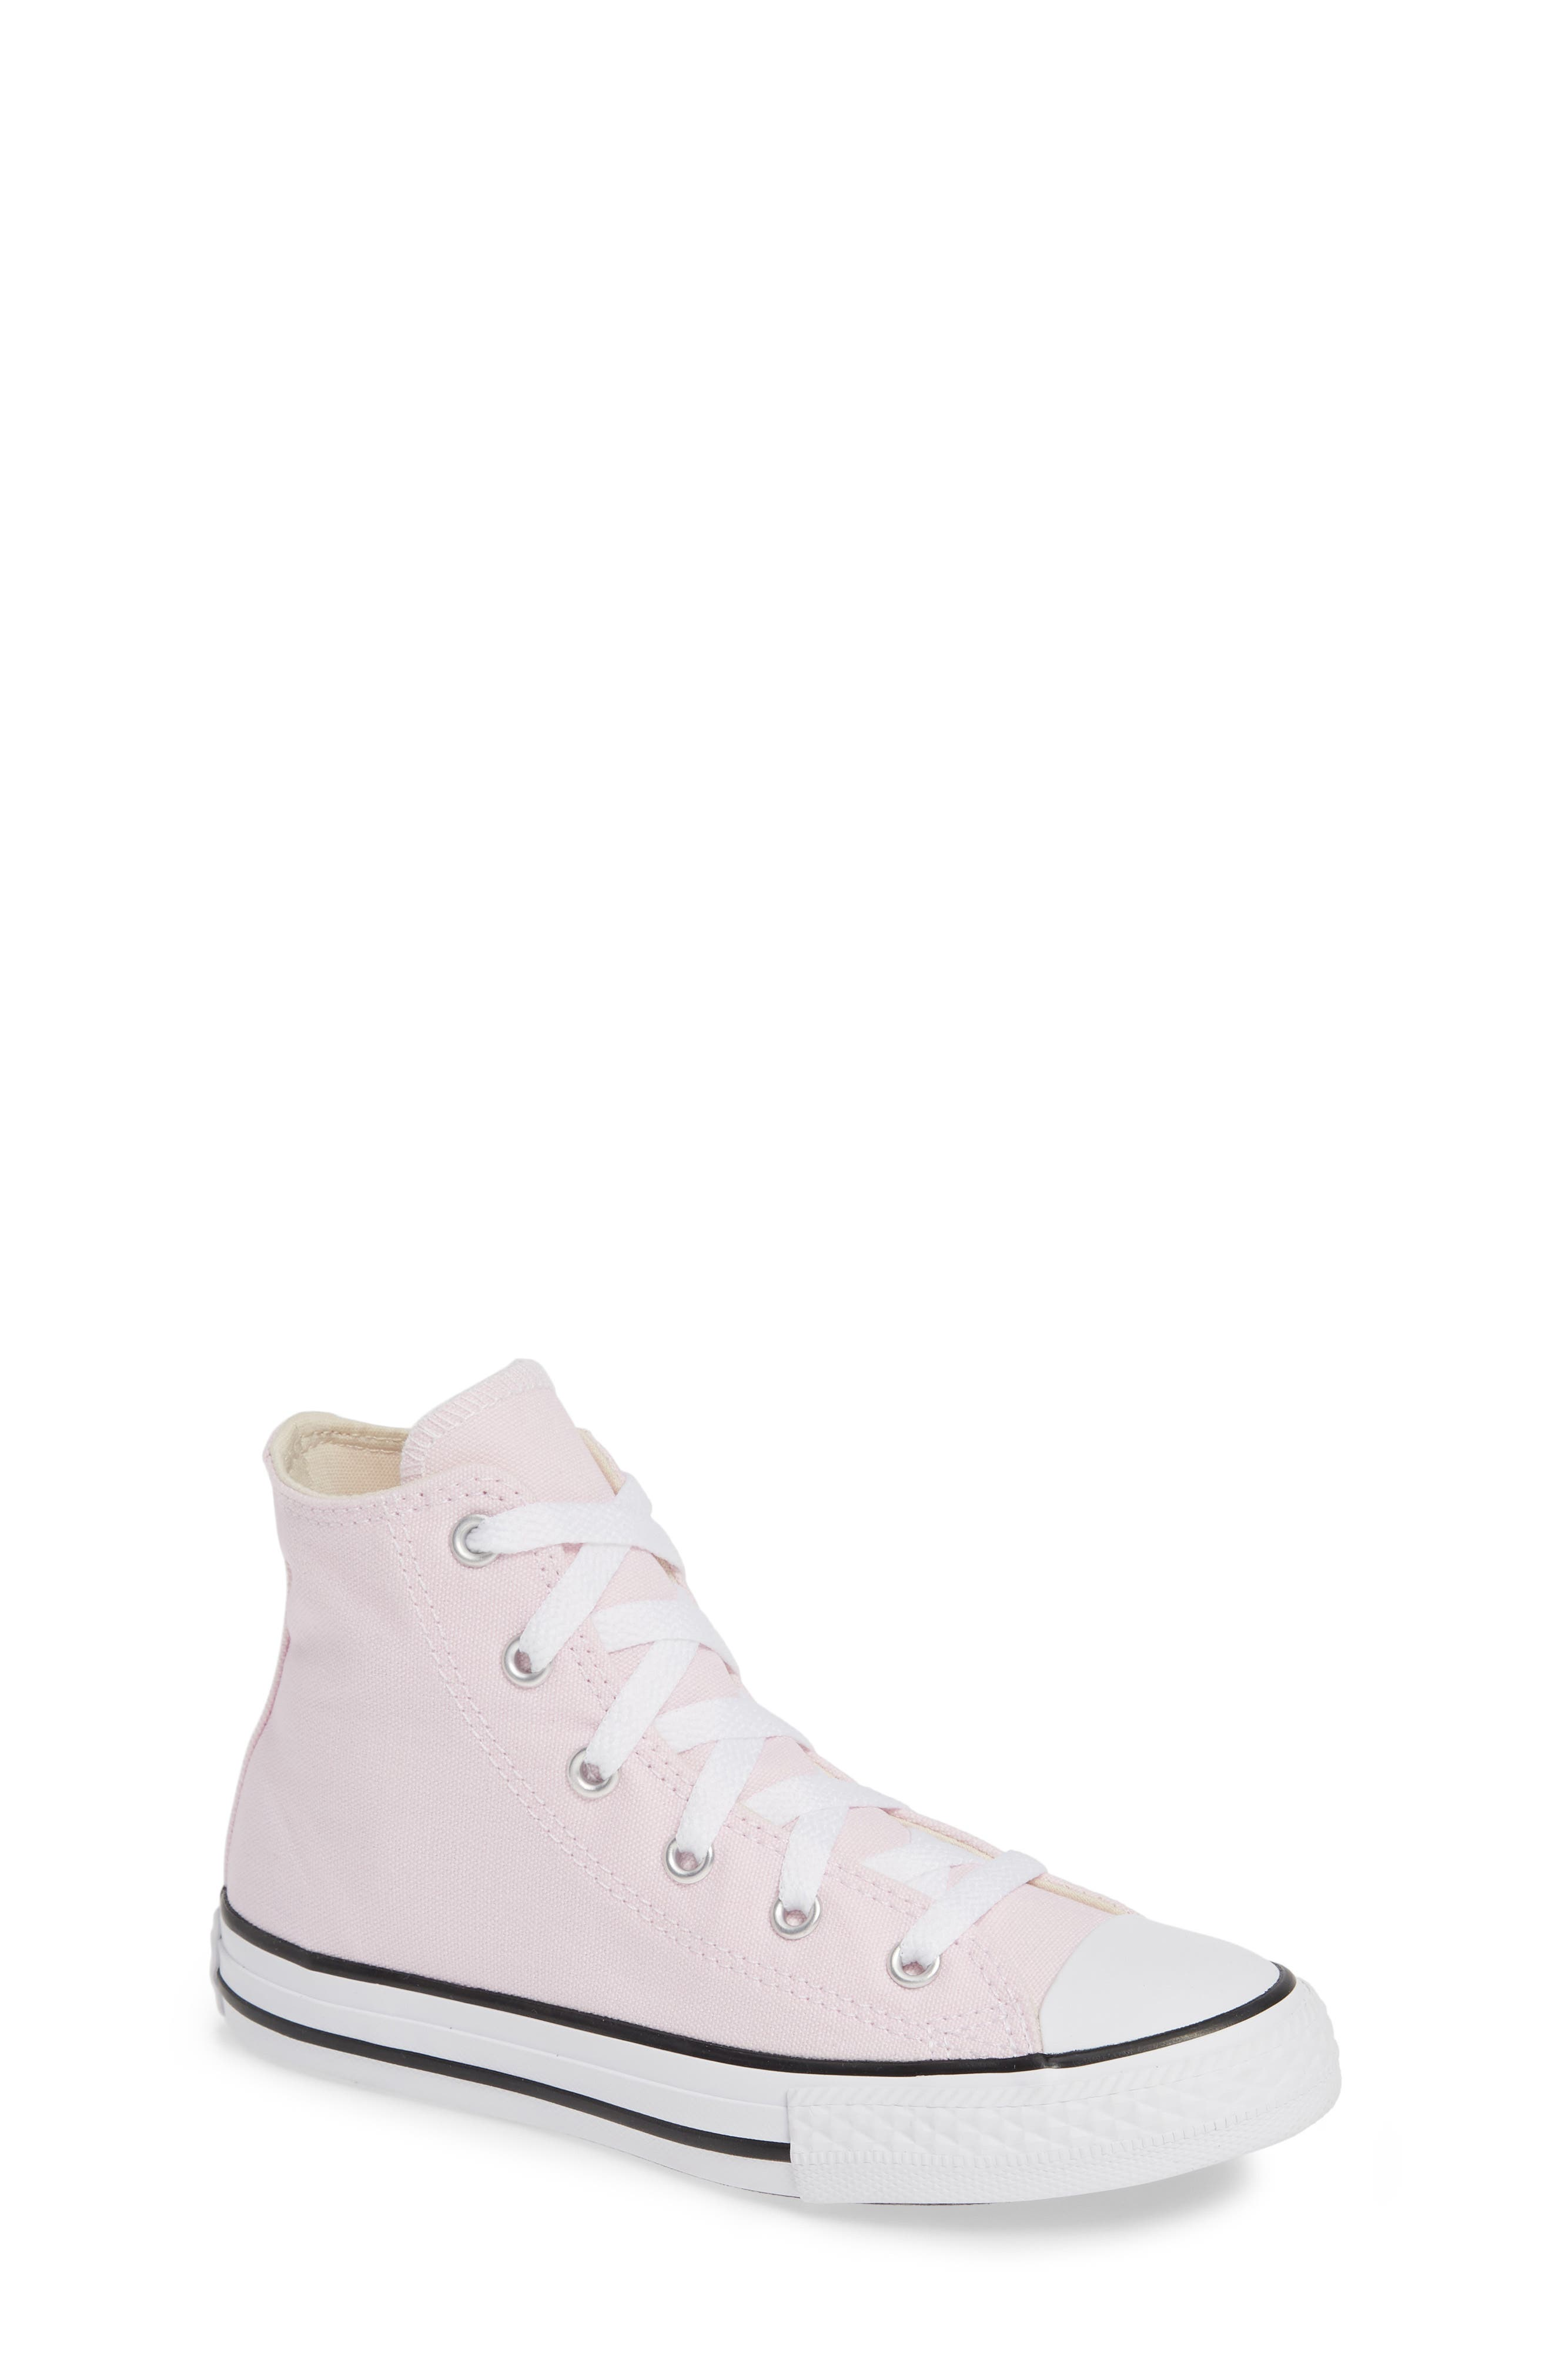 CONVERSE Chuck Taylor<sup>®</sup> High Top Sneaker, Main, color, PINK FOAM/ IVORY/ WHITE